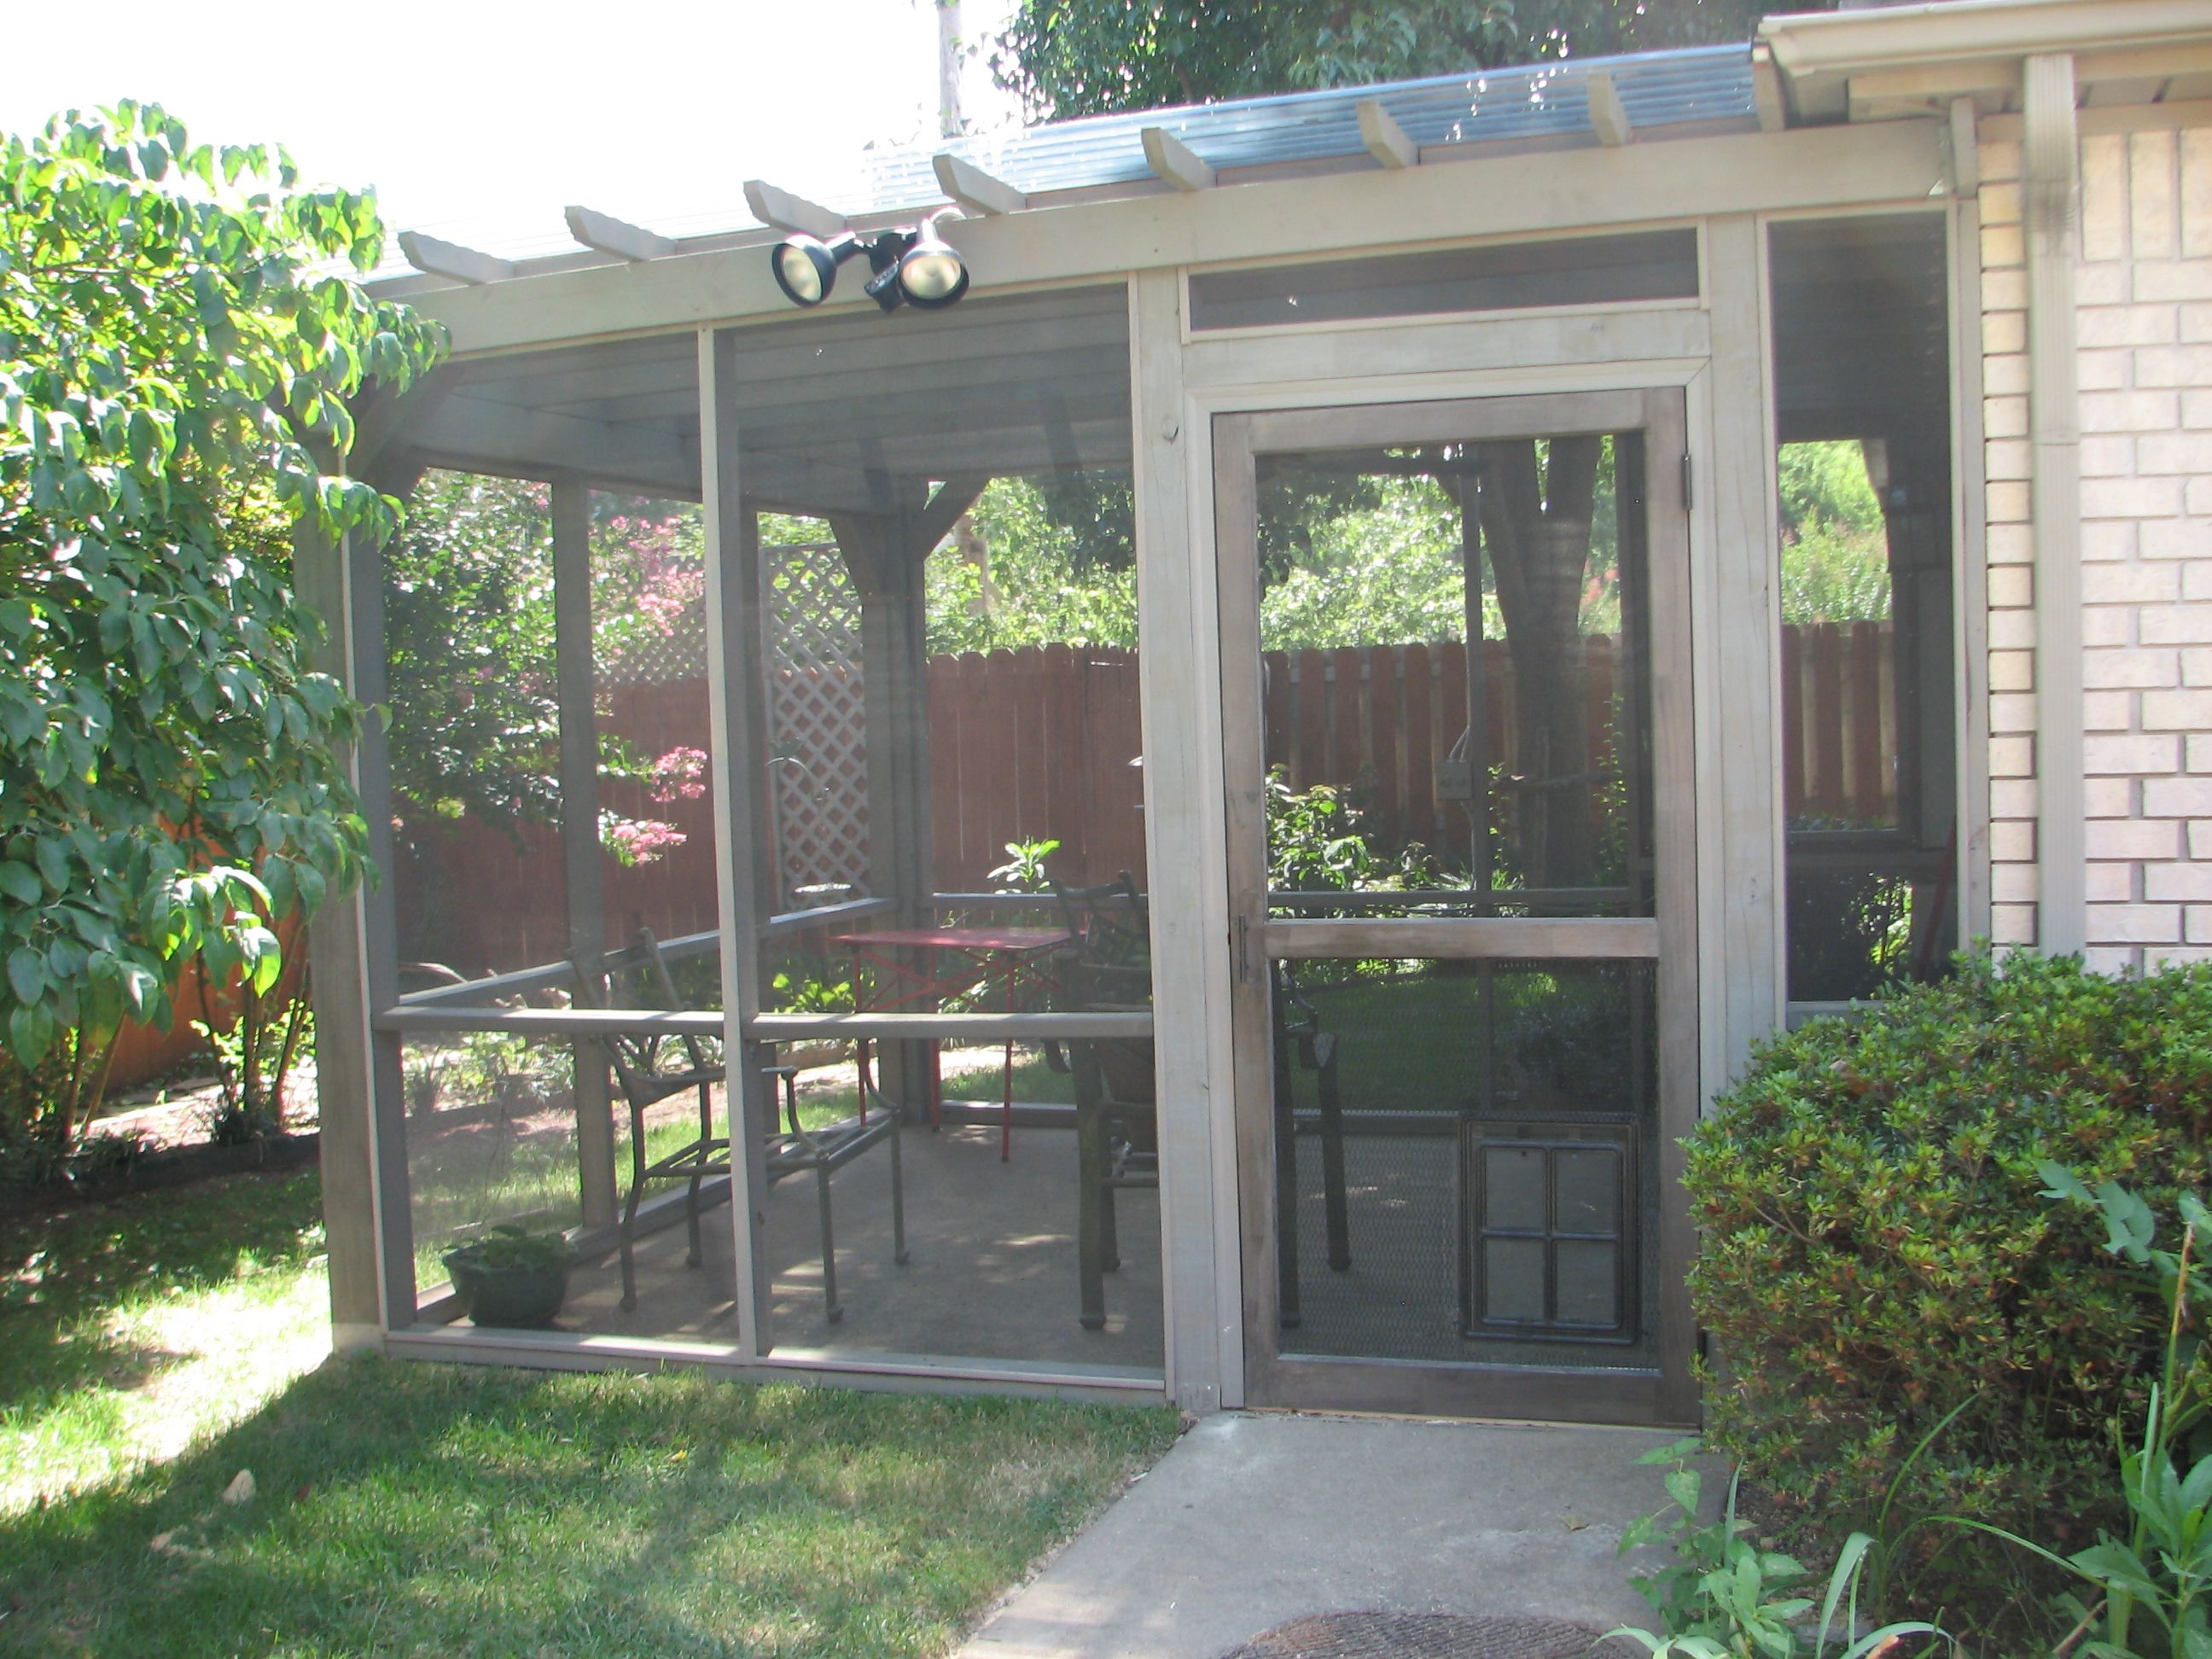 Genial Pergola Screen Porch With Transparent Roof. Add Some Hammocks And This Will  Be Heaven